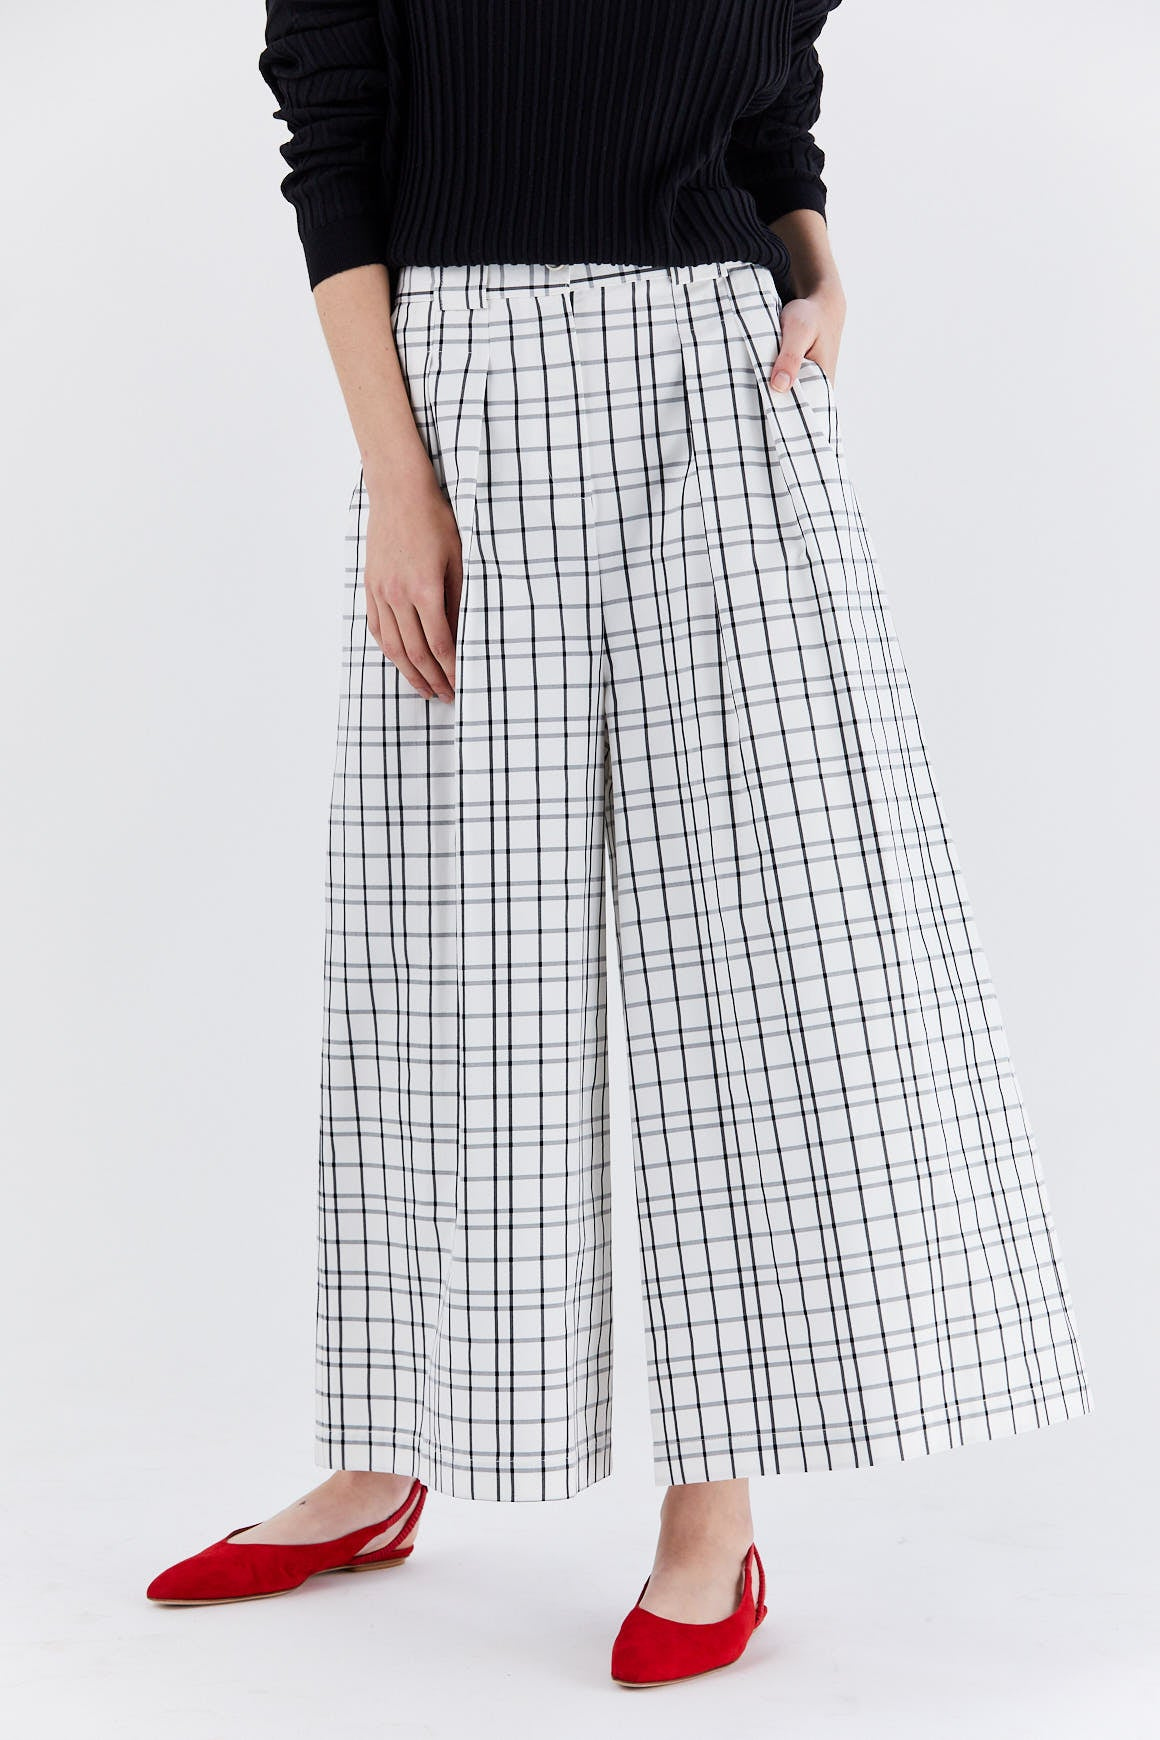 Dušan - highwaist pants, Black and White